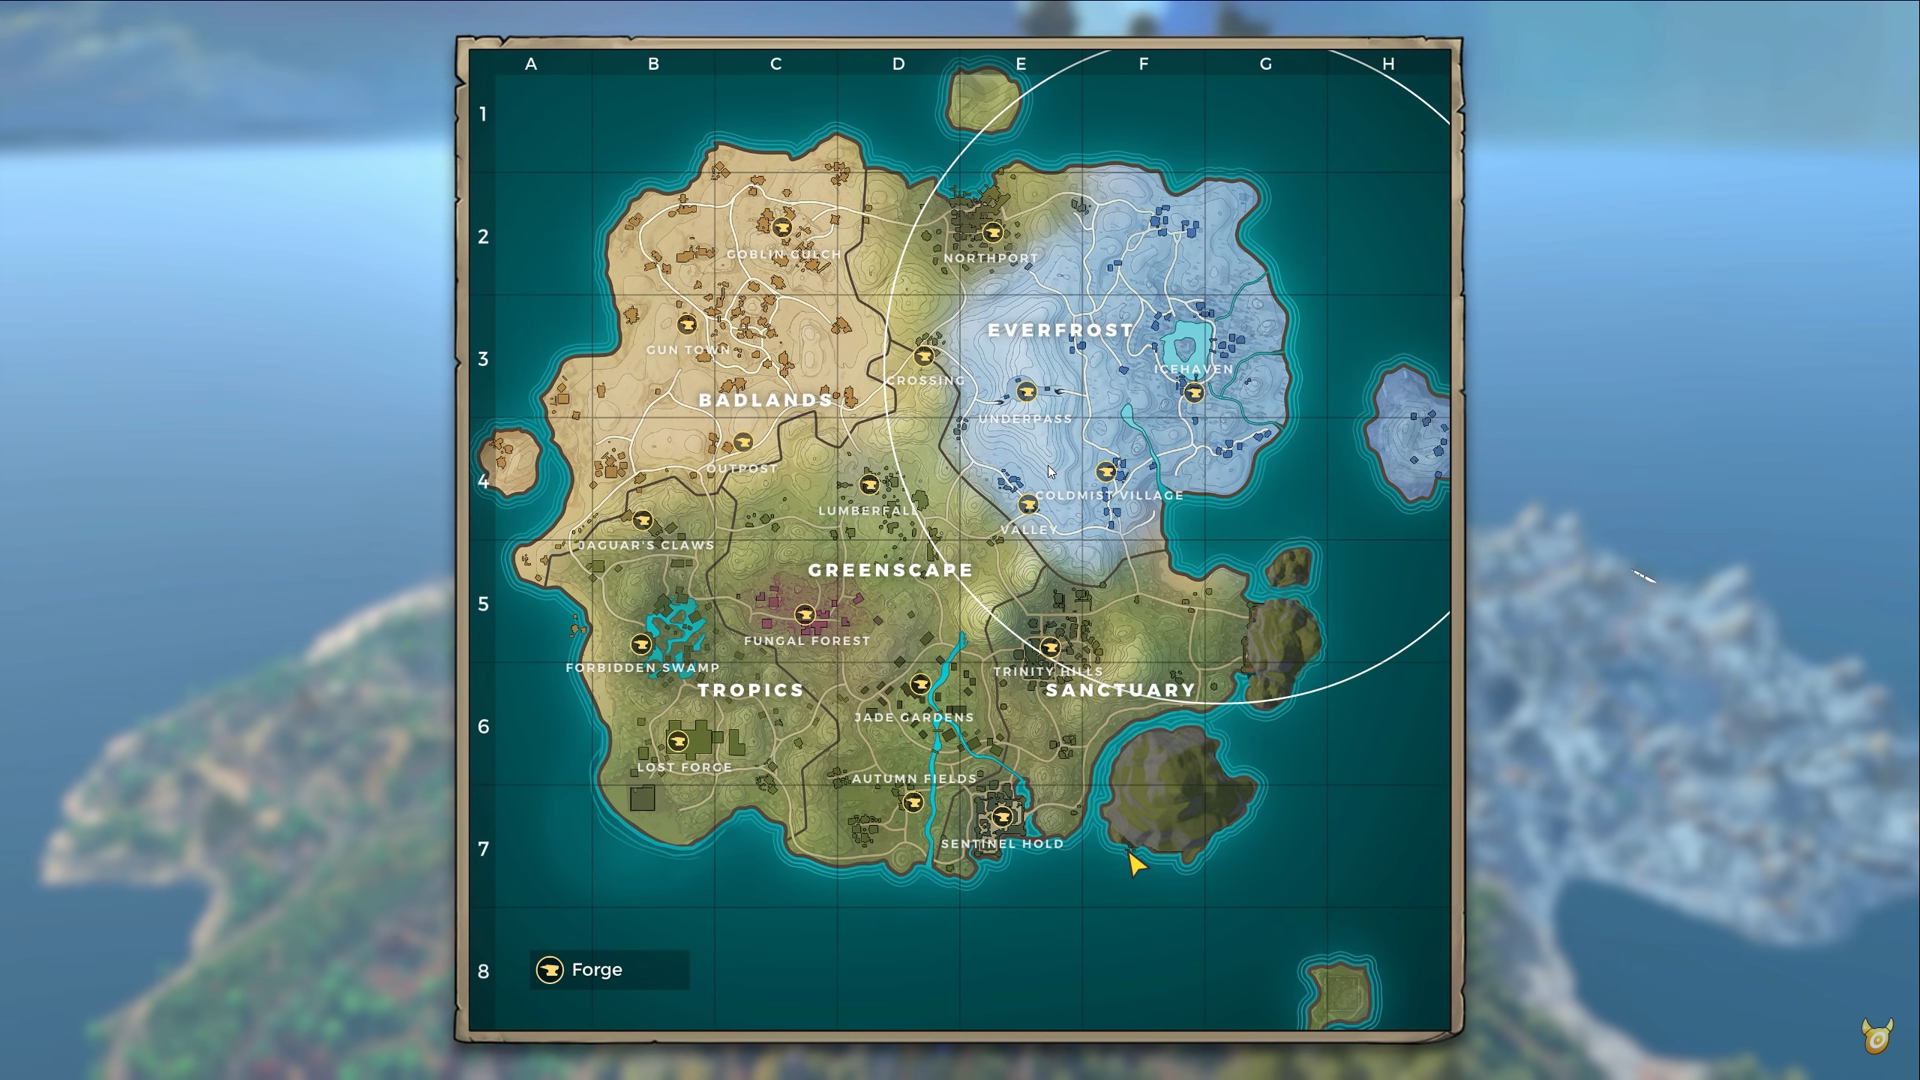 Realm Royale  Map guide   Forge locations  loot spots and more     Realm Royale  Map guide   Forge locations  loot spots and more   Metabomb